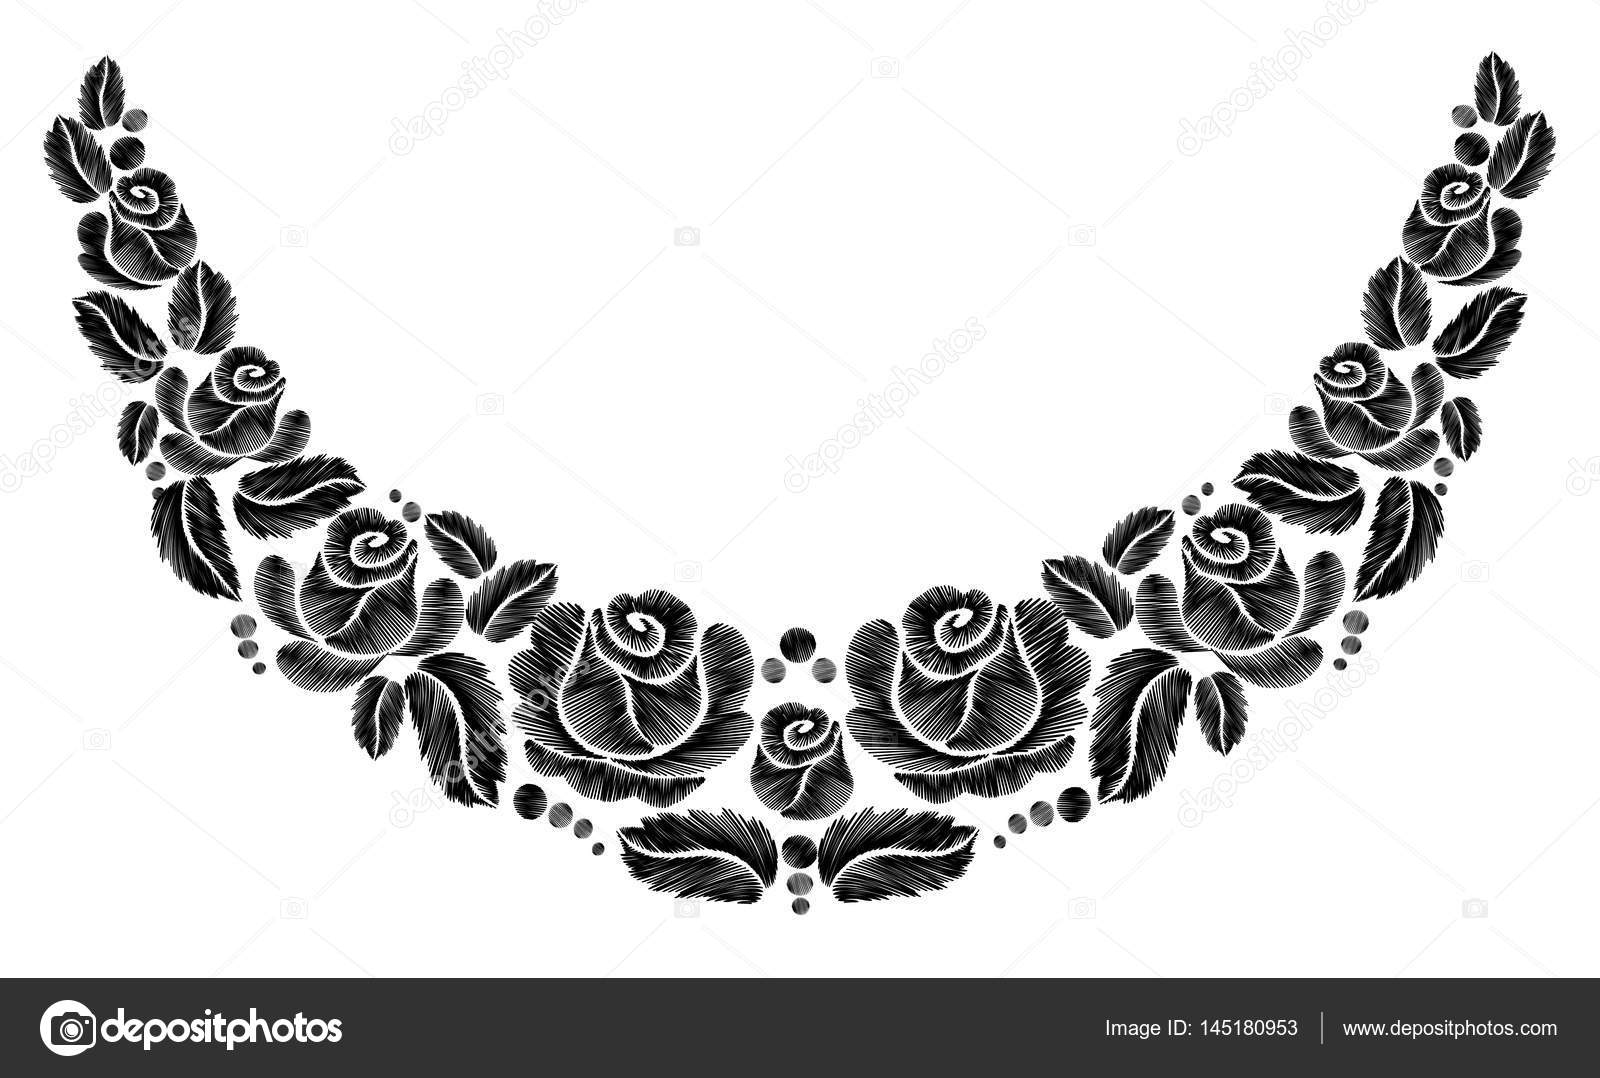 Black roses embroidery on white background ethnic flowers neck line black roses embroidery on white background ethnic flowers neck line flower design graphics fashion wearing vector vector by goodluckwithus mightylinksfo